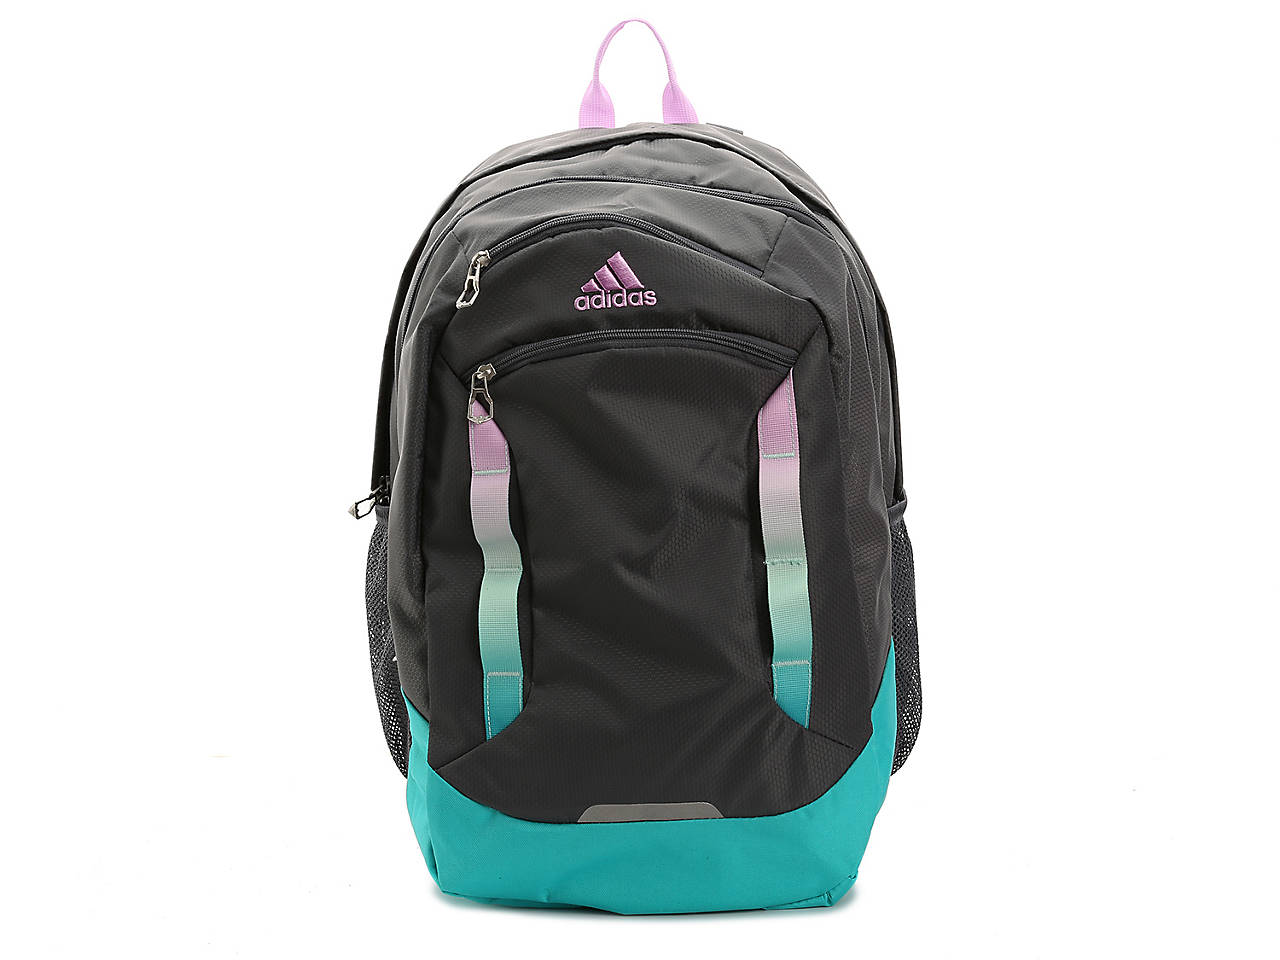 7cebb5e676 adidas Excel IV Backpack Women s Handbags   Accessories